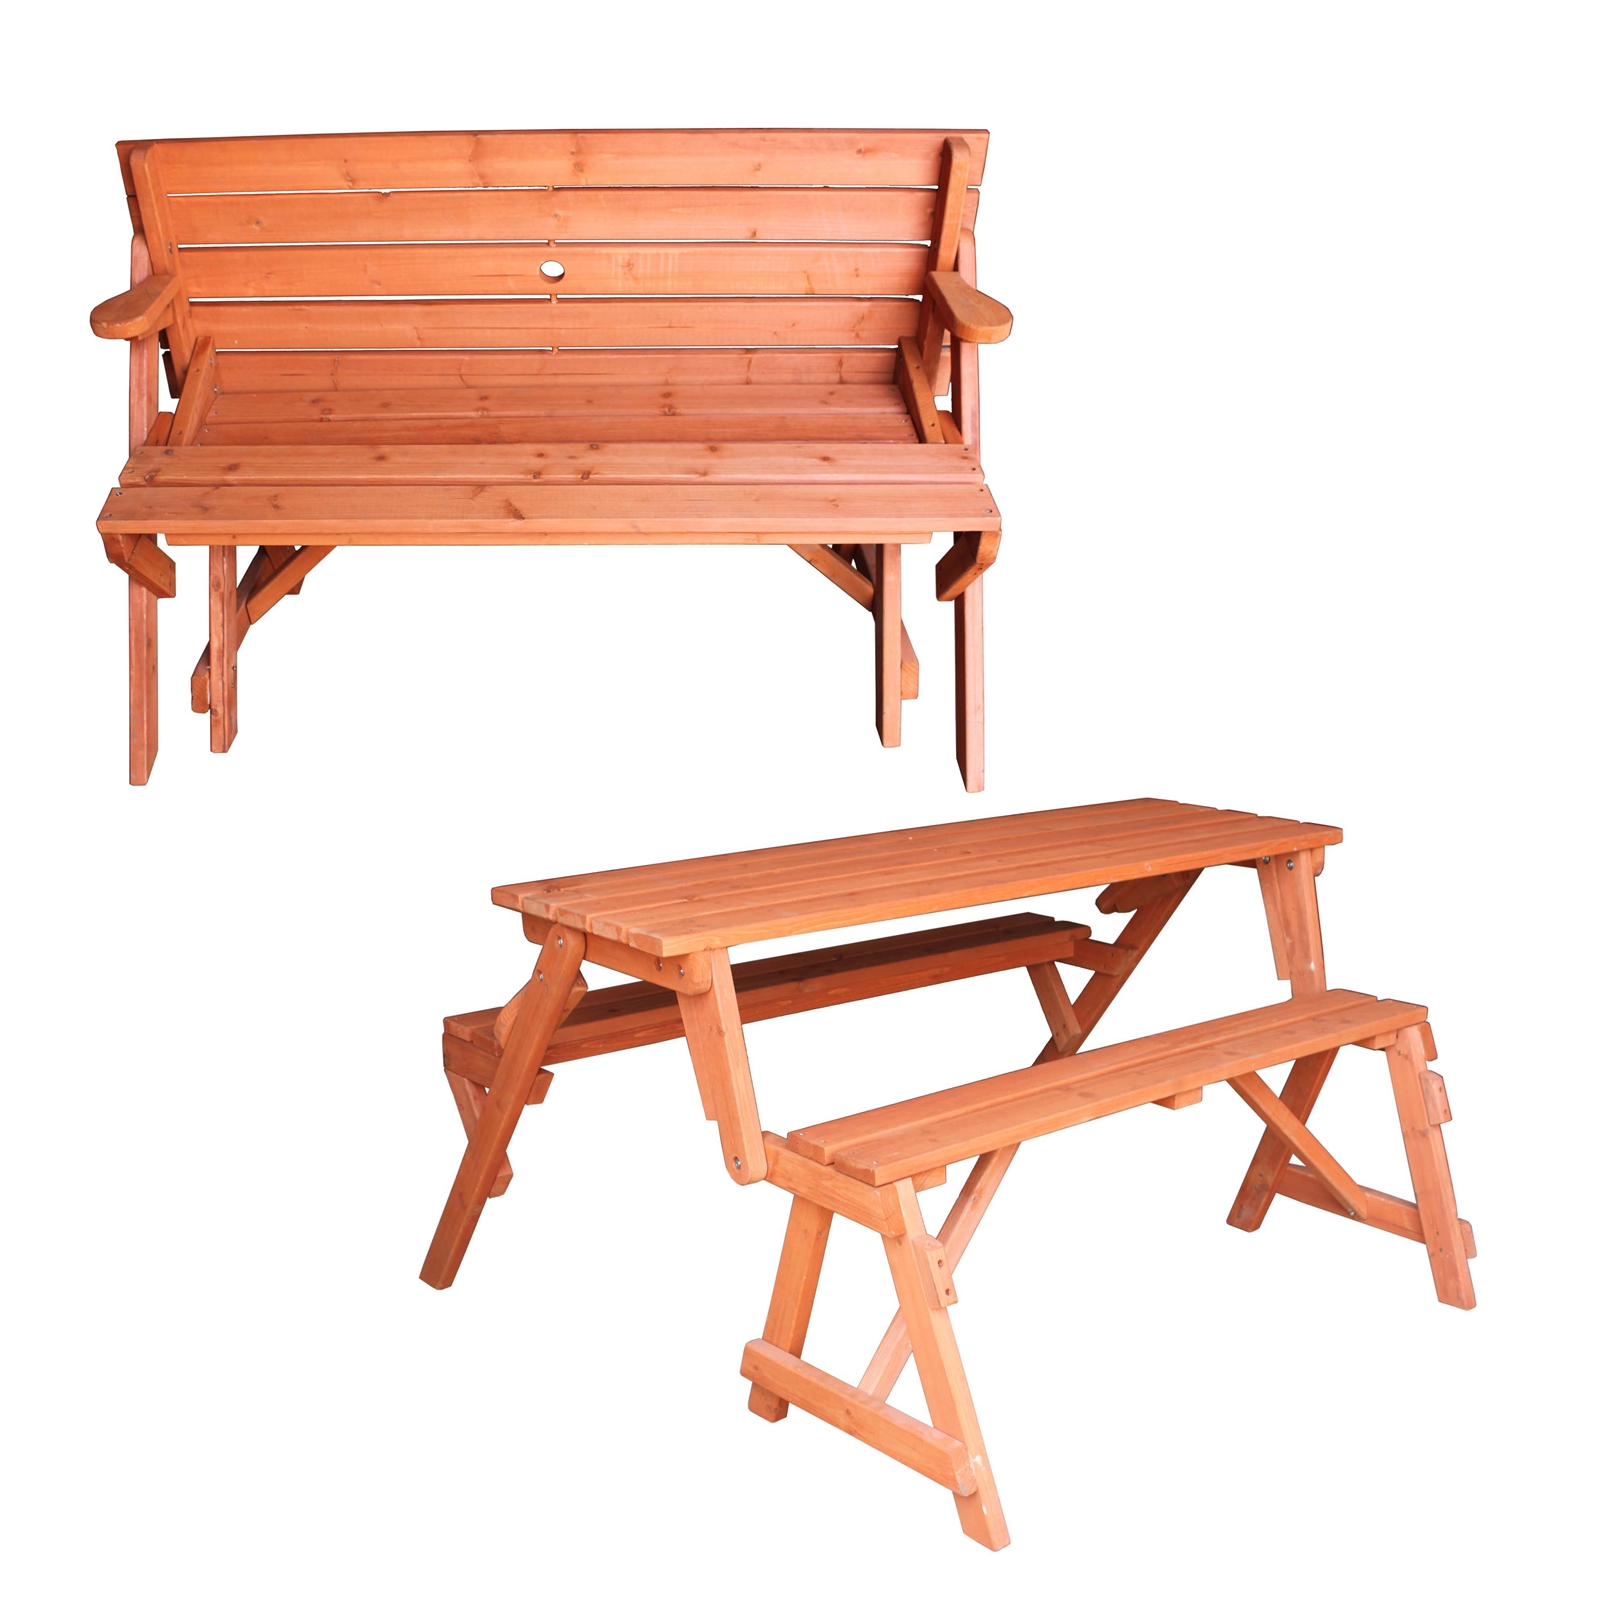 foxhunter garden wooden folding picnic seat table bench 2. Black Bedroom Furniture Sets. Home Design Ideas